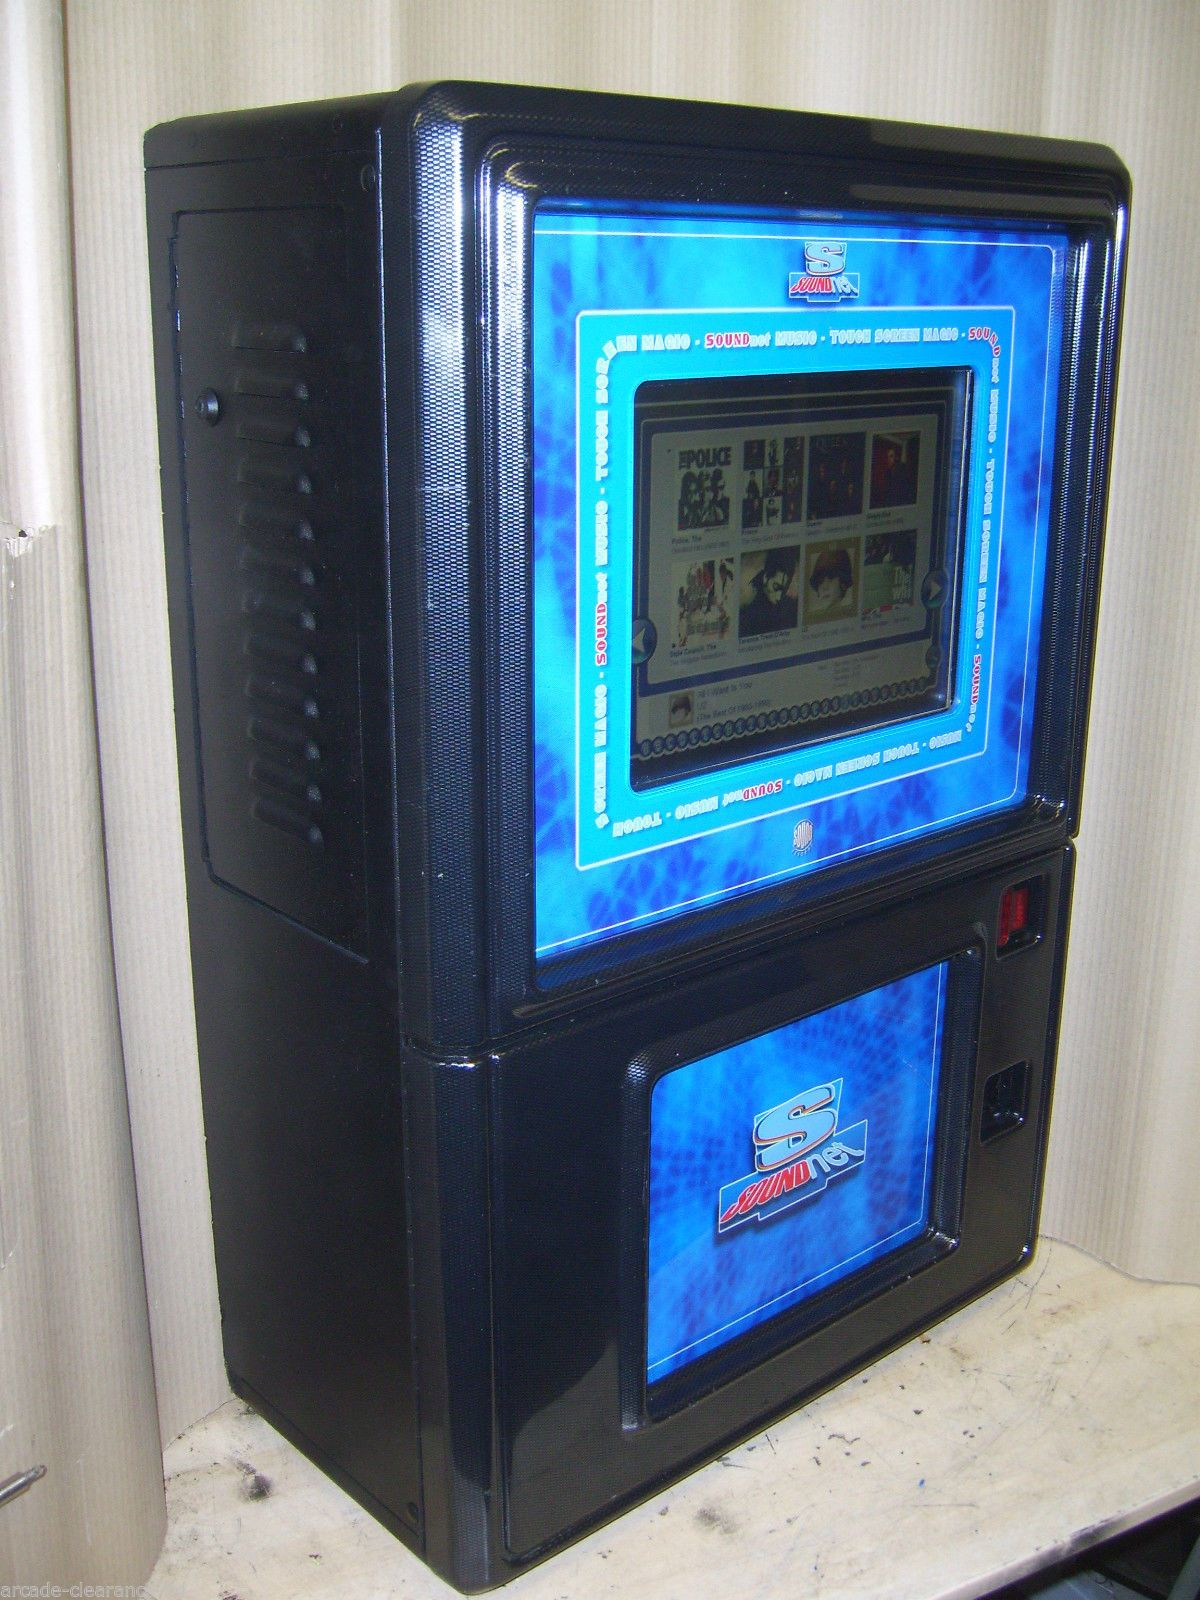 Touchscreen Wallmounted Digital Mp3 Jukebox Home Use